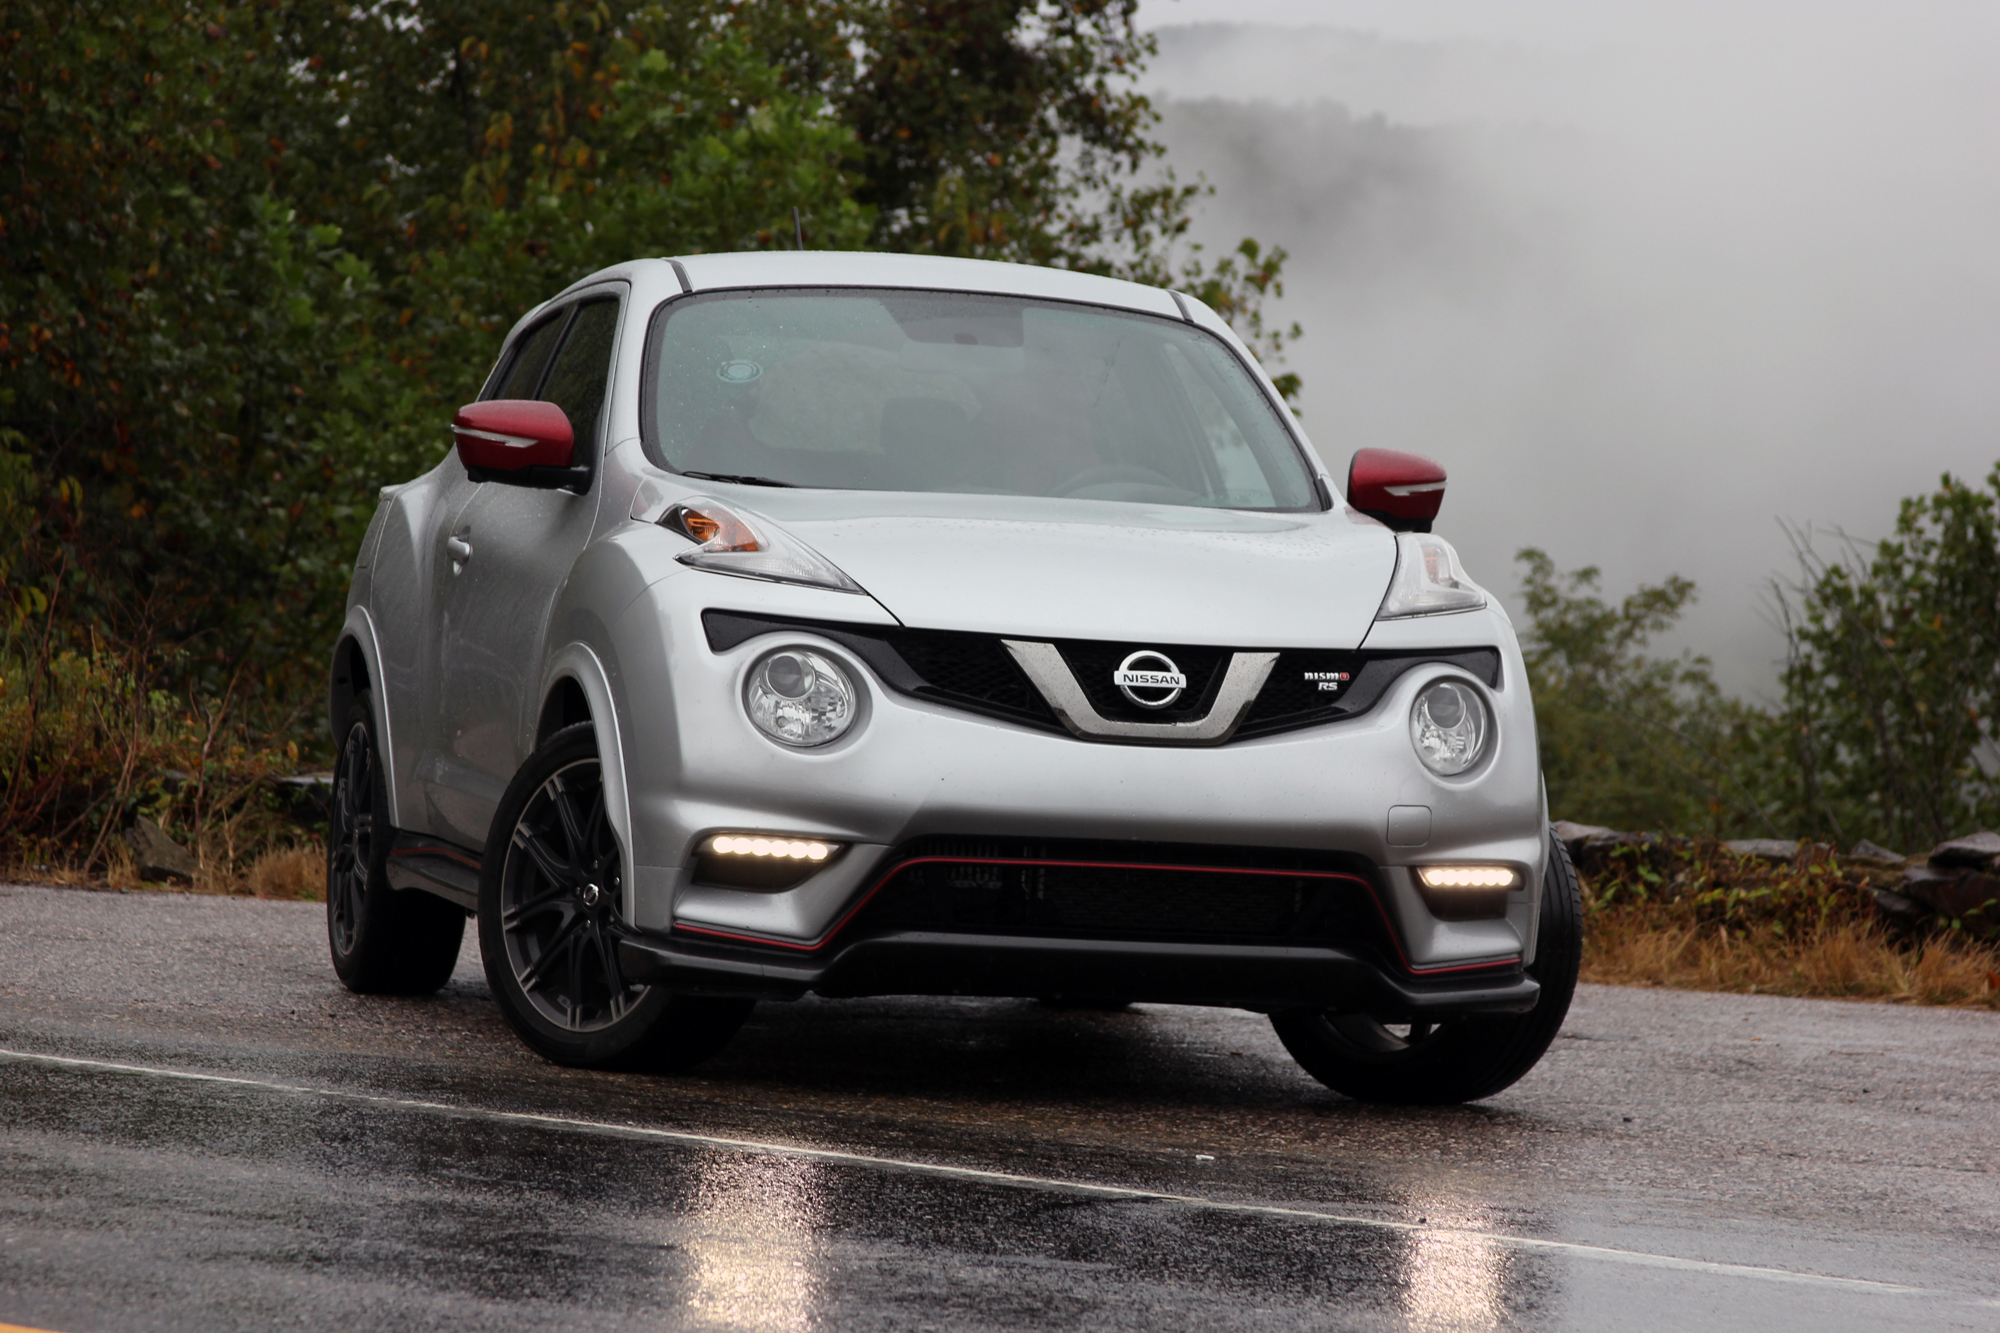 2015 nissan juke nismo rs video review autotalk. Black Bedroom Furniture Sets. Home Design Ideas